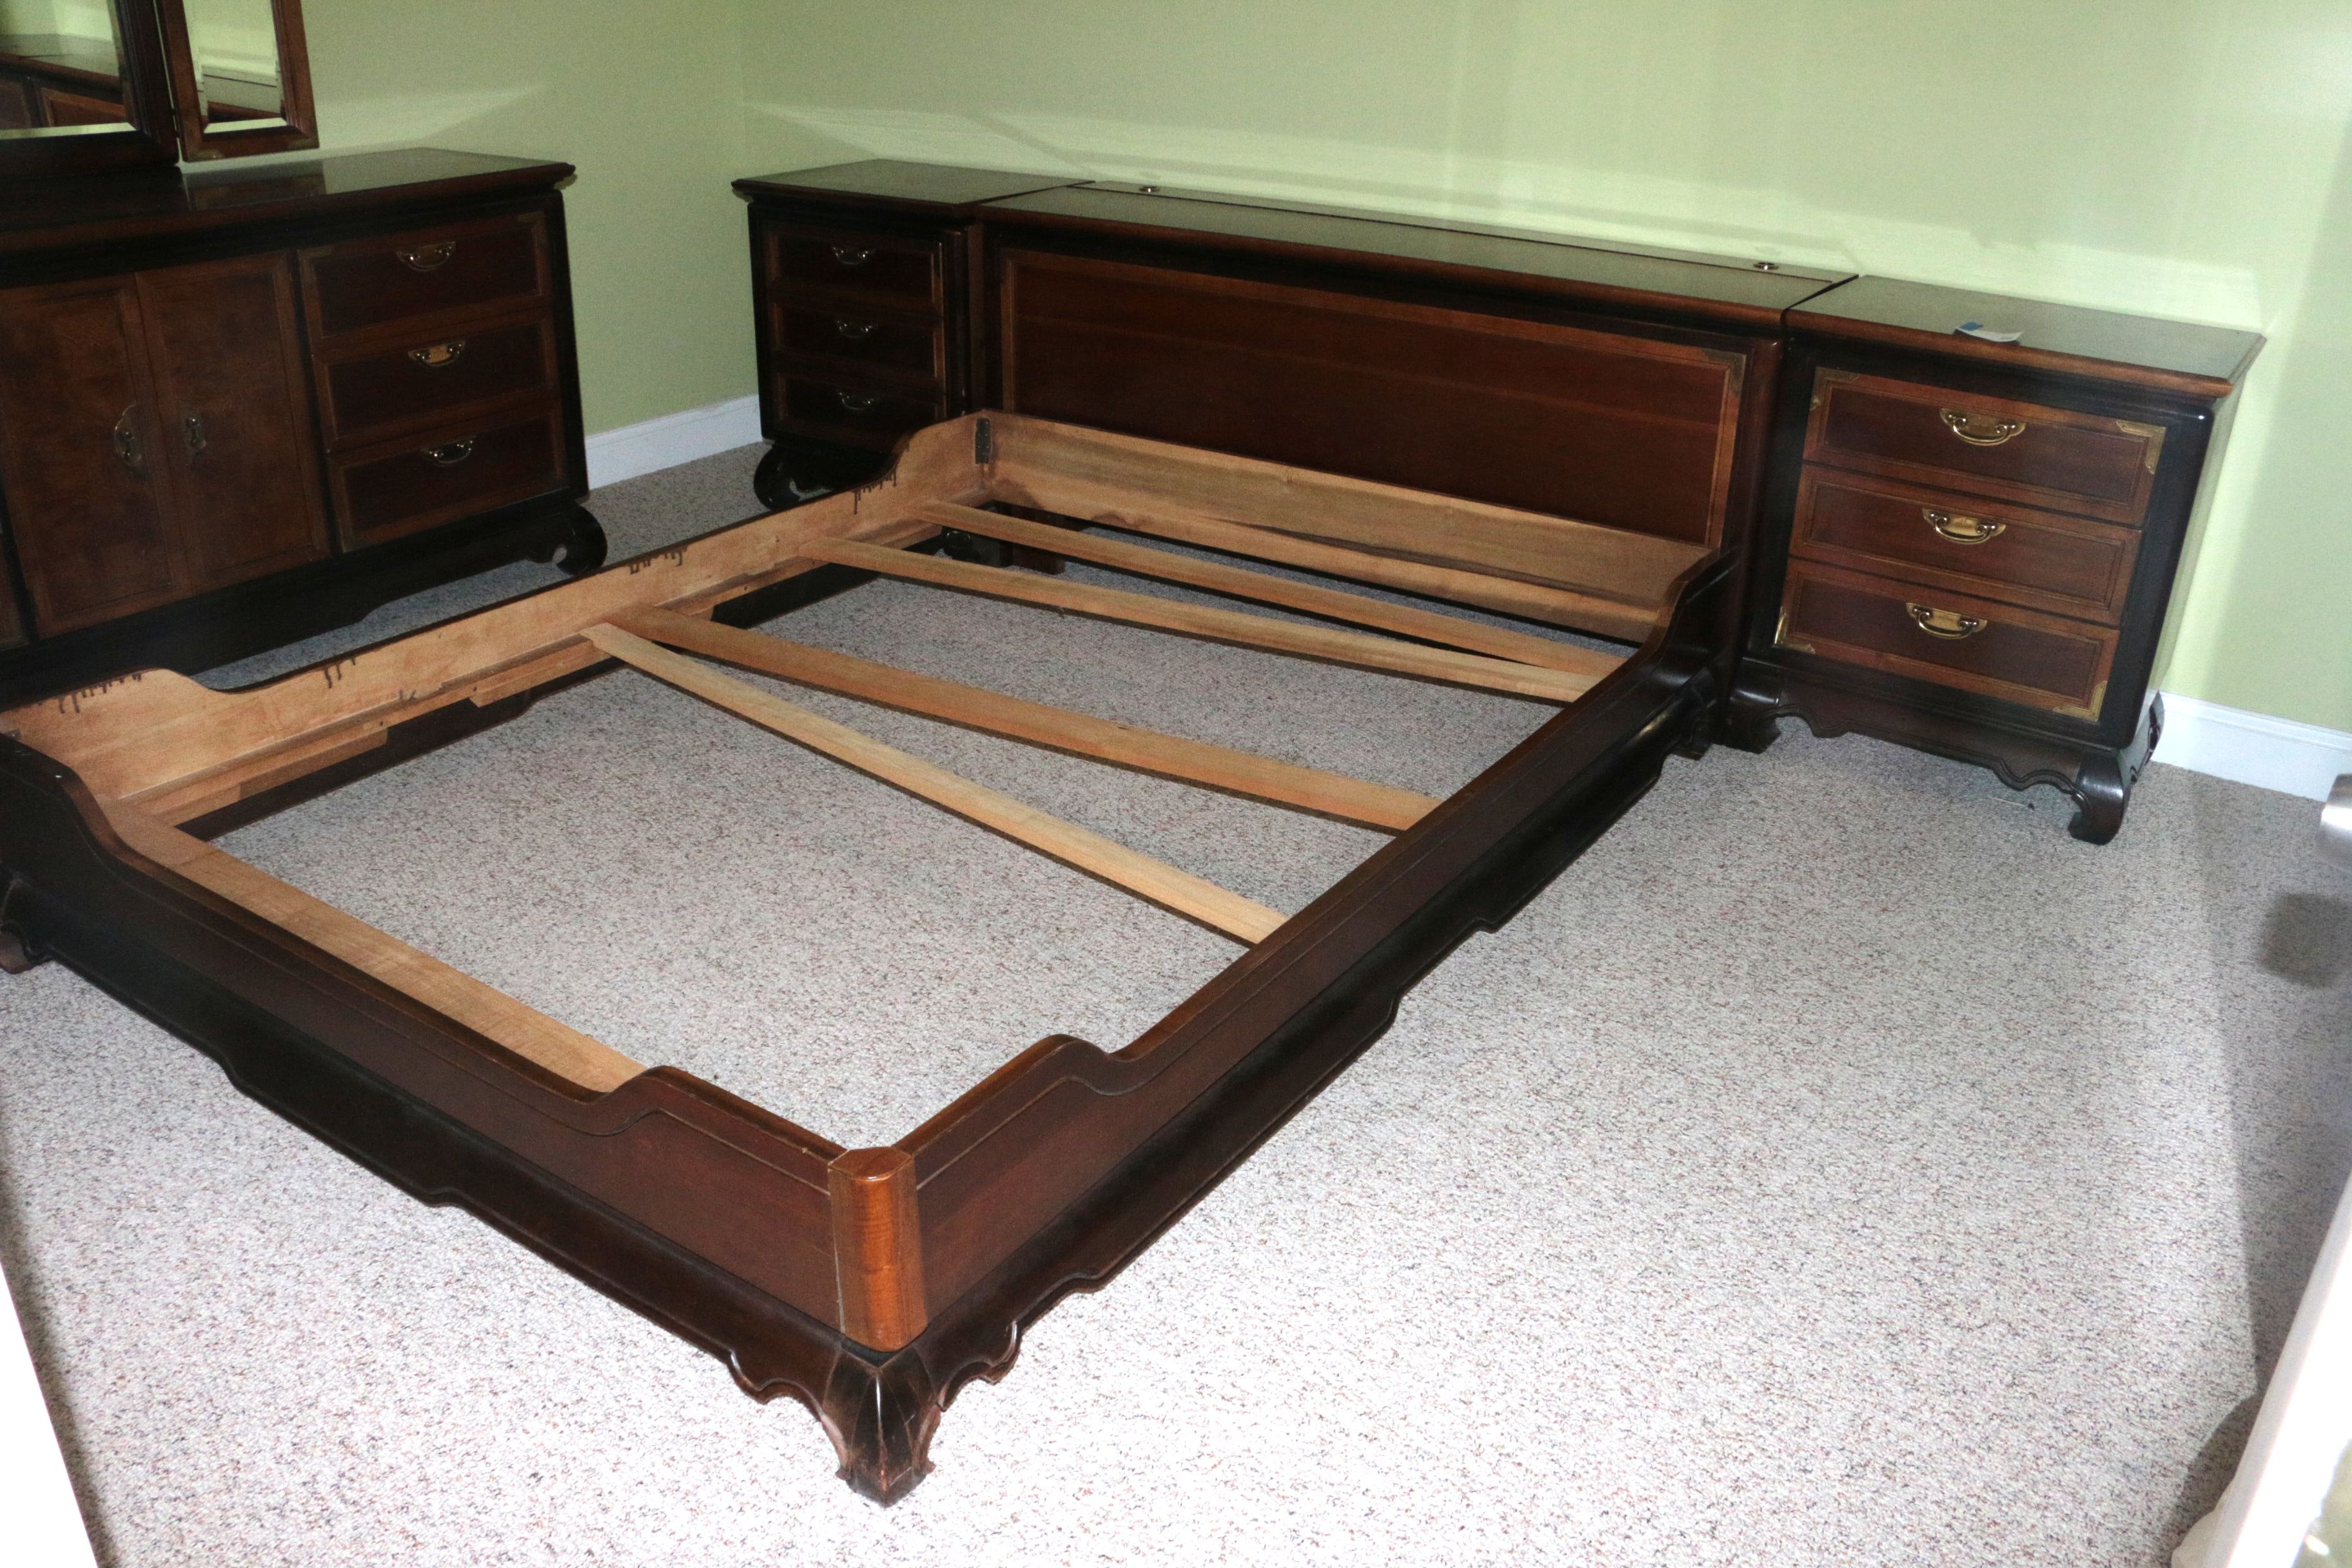 Vintage Storage Headboard and Bed Frame with Nightstands by Broyhill